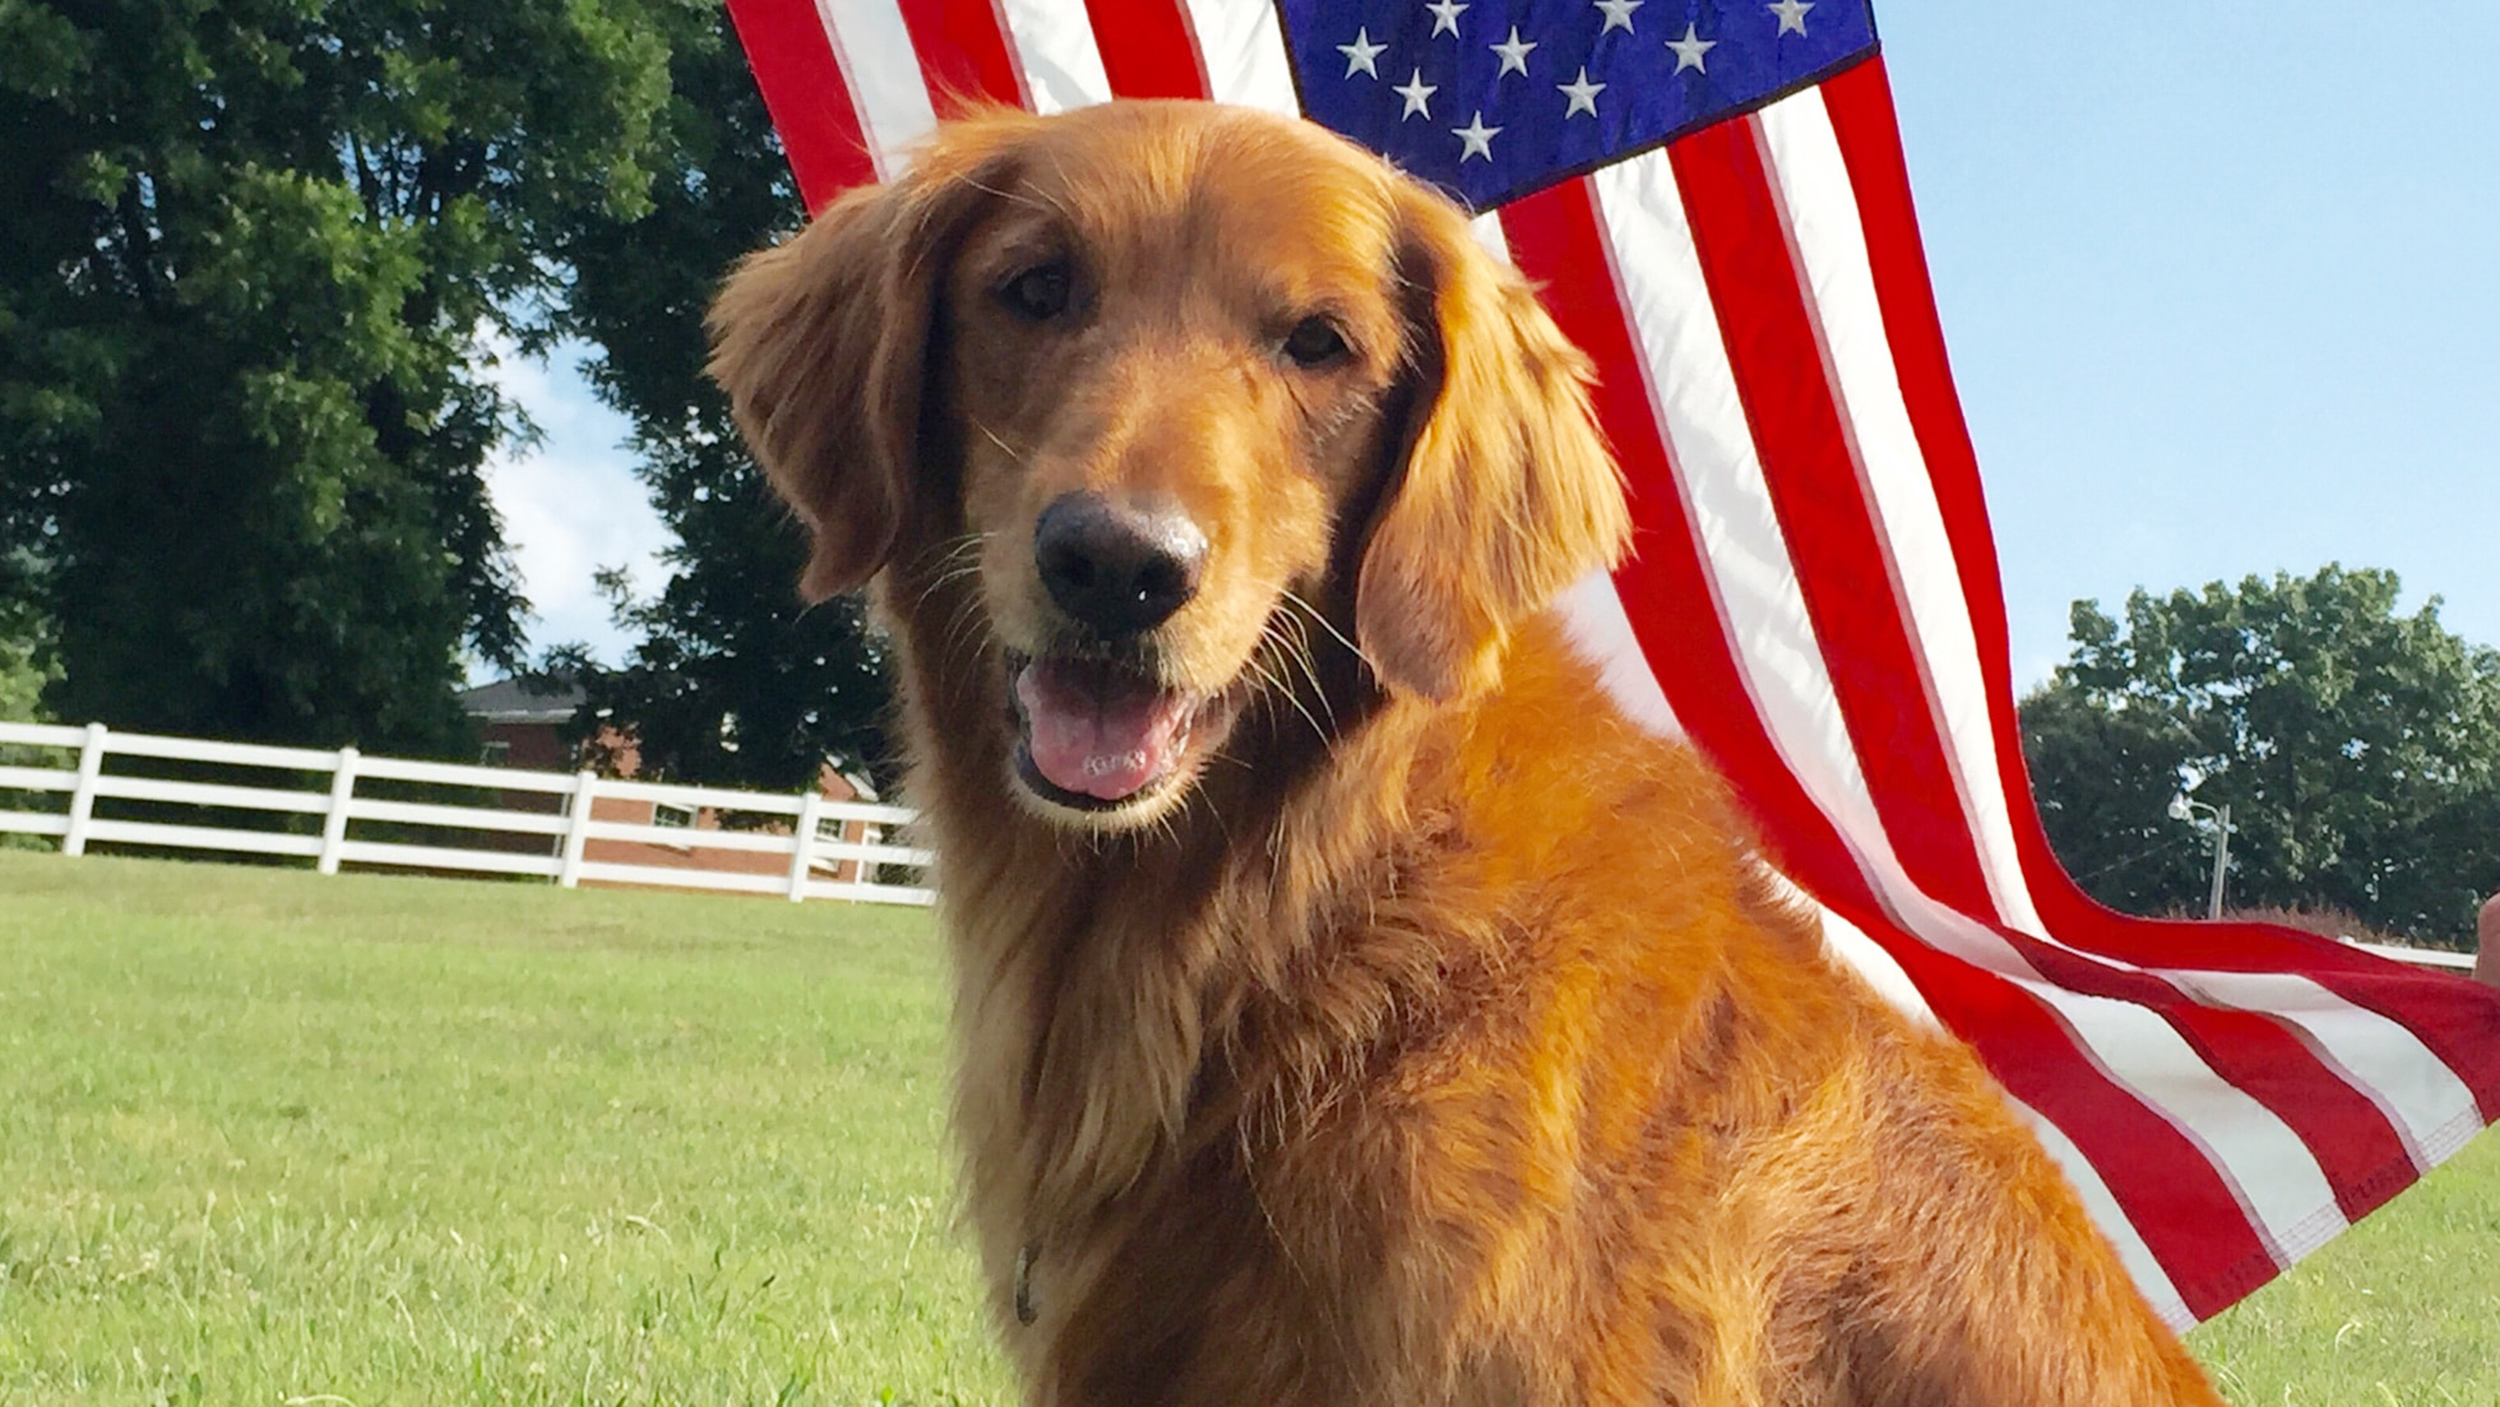 dog who played duke in famous bush s baked beans commercials dies